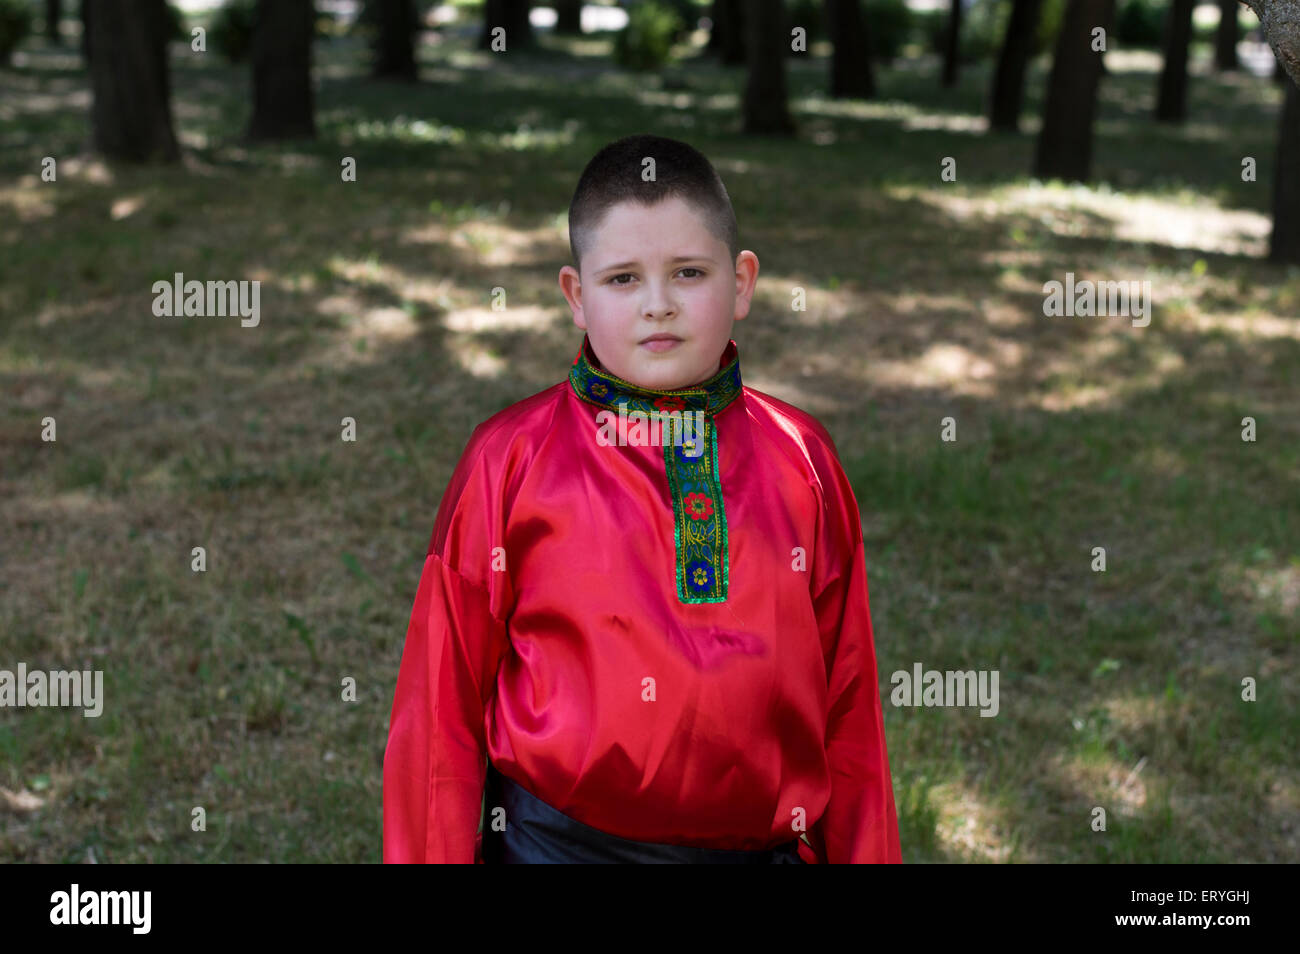 the boy in a red Russian shirt - Stock Image